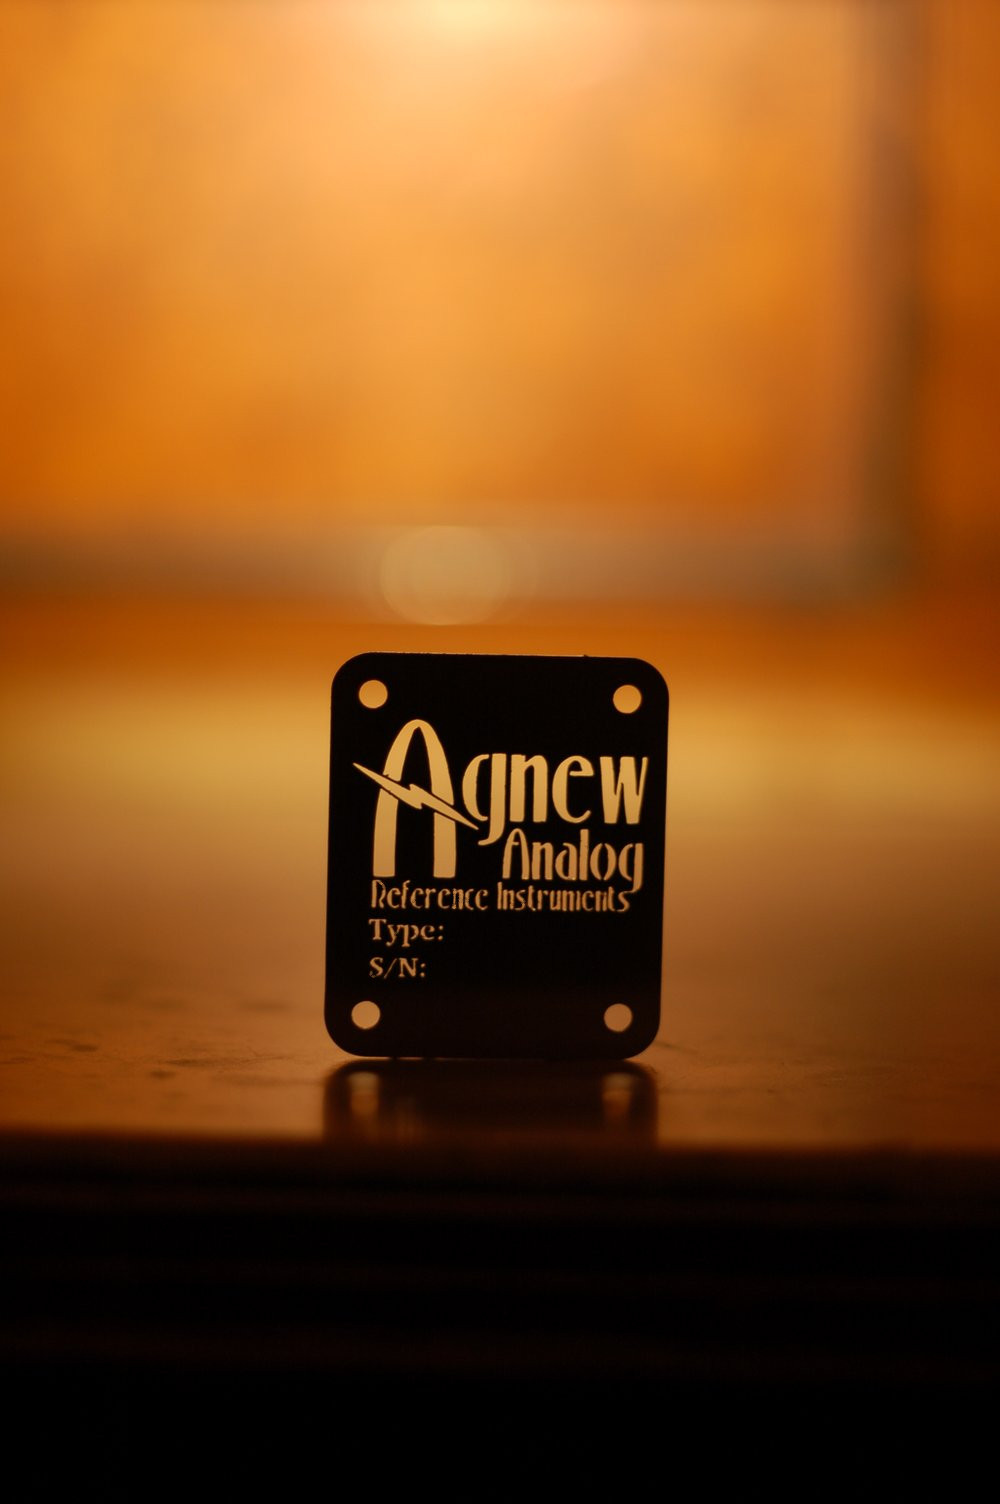 Agnew Analog Reference Instruments Blog